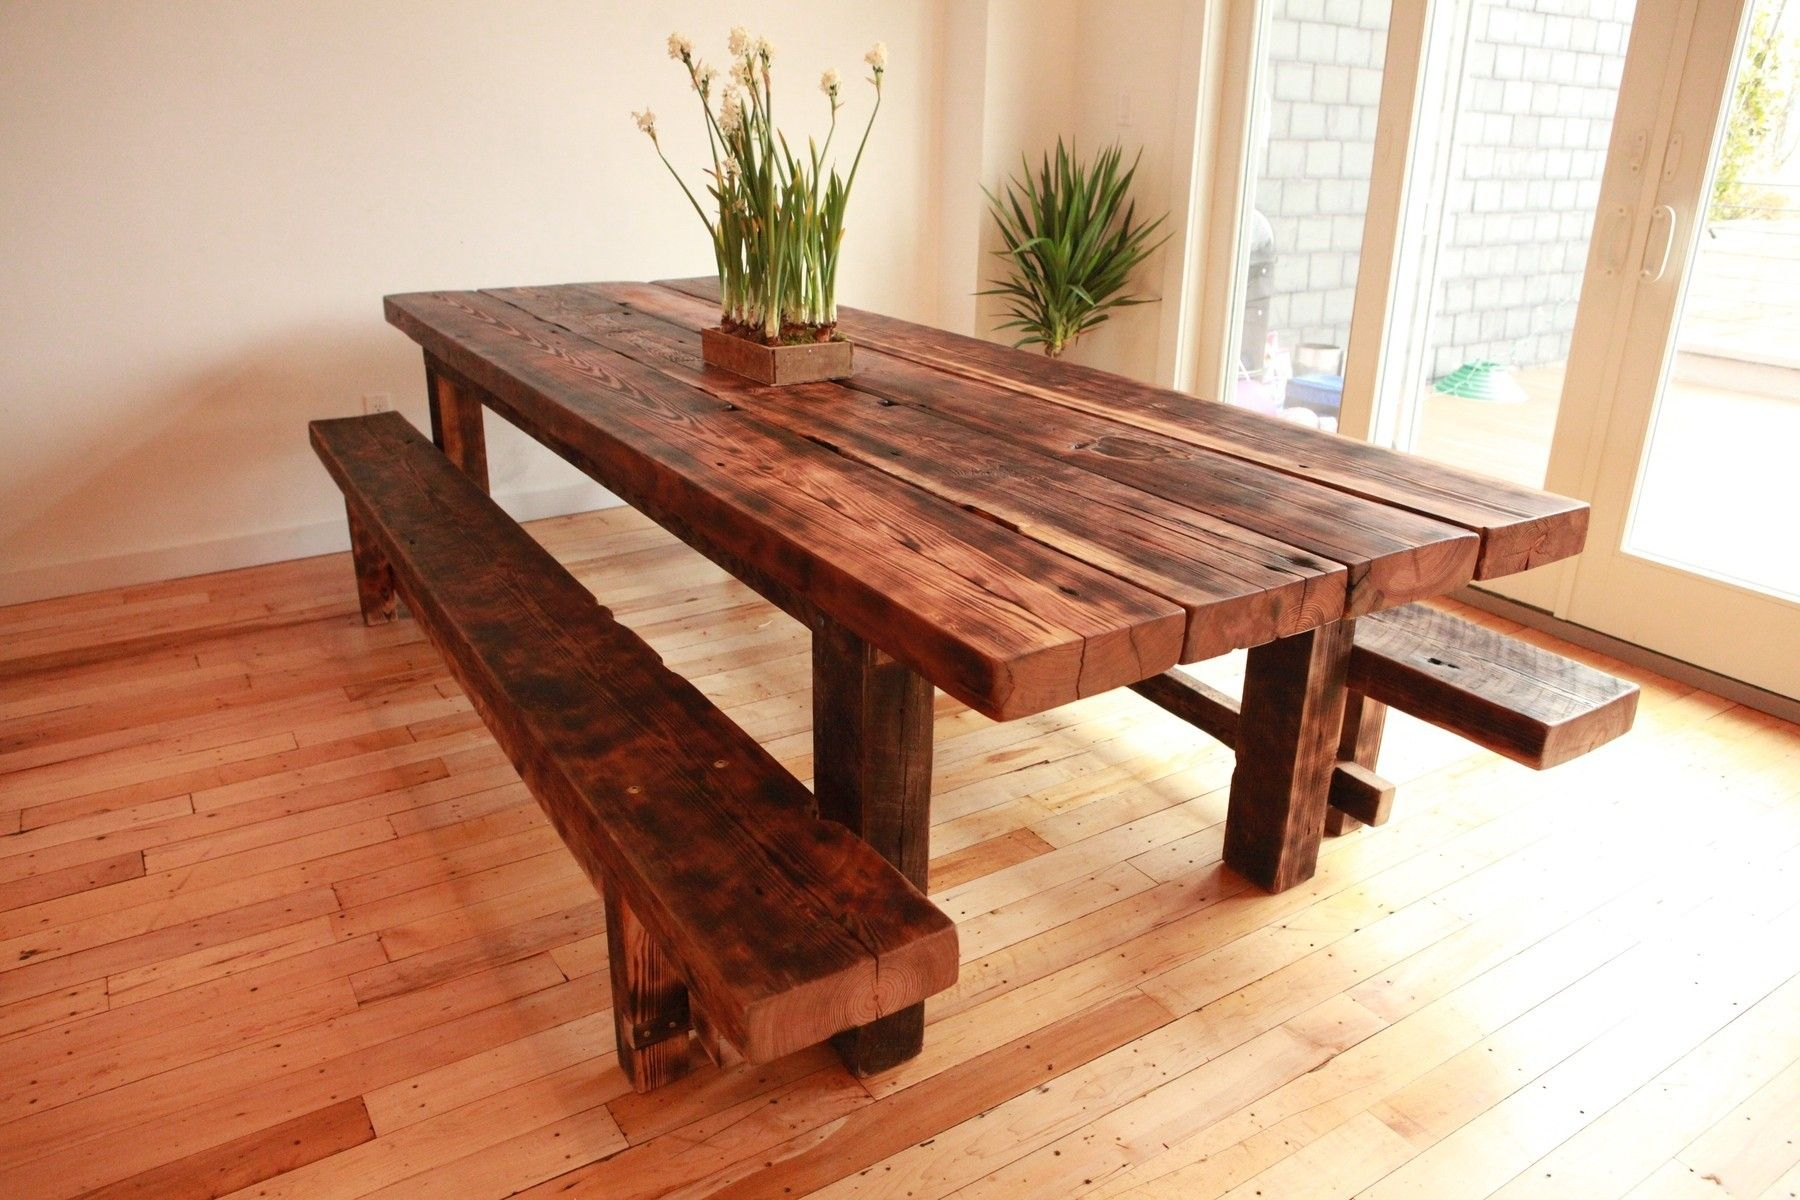 Rustic Dining Nook Set With Bench Made Of Dark Wood Dining Table